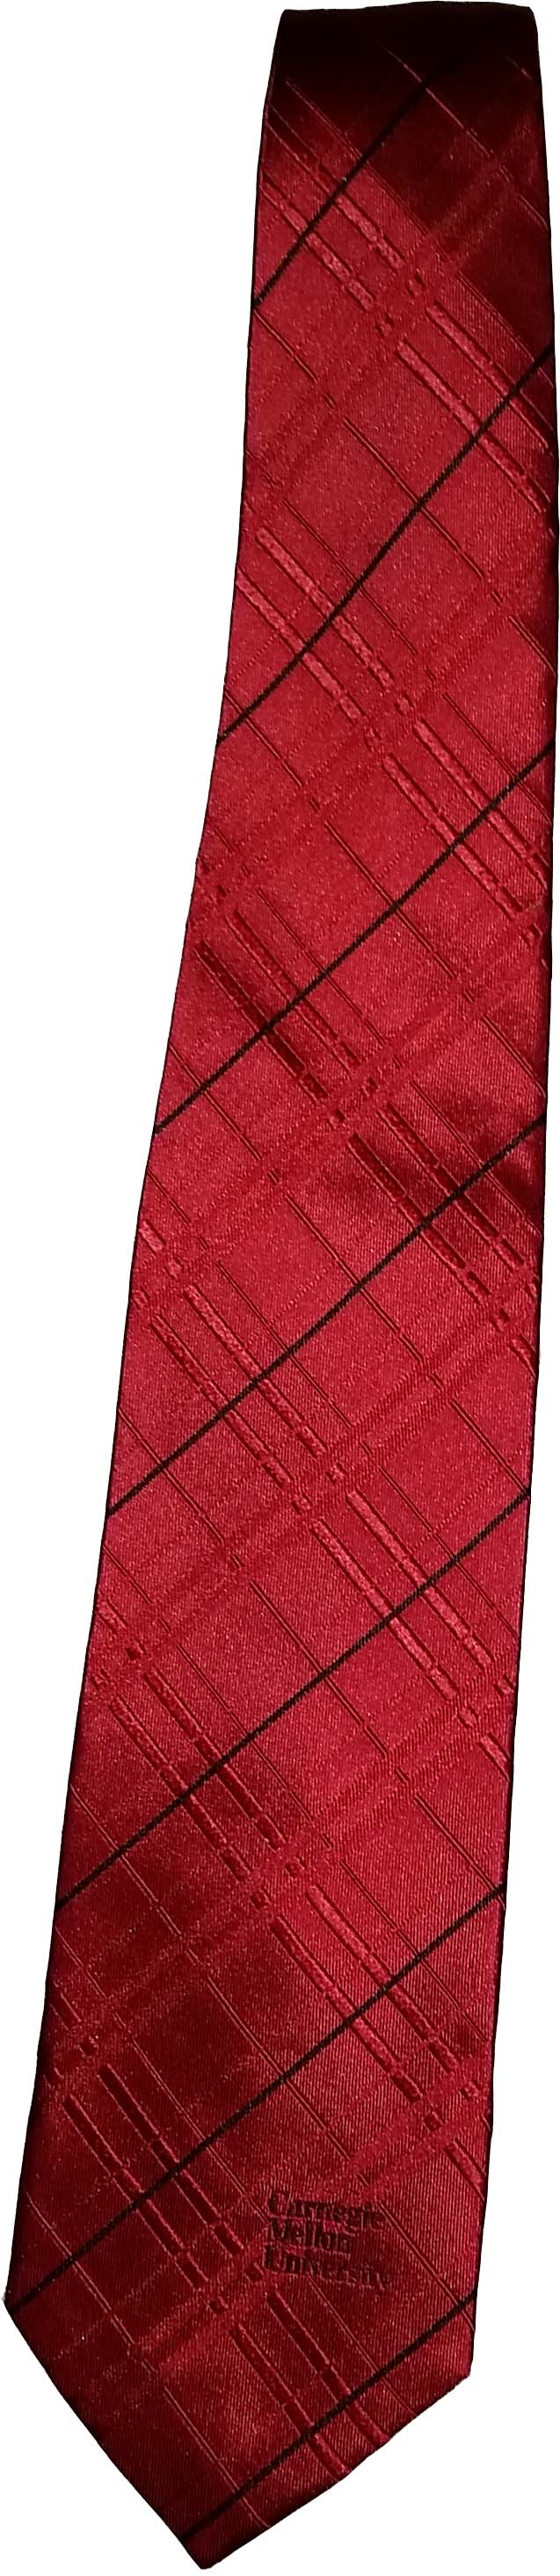 Tie: Red Wordmark